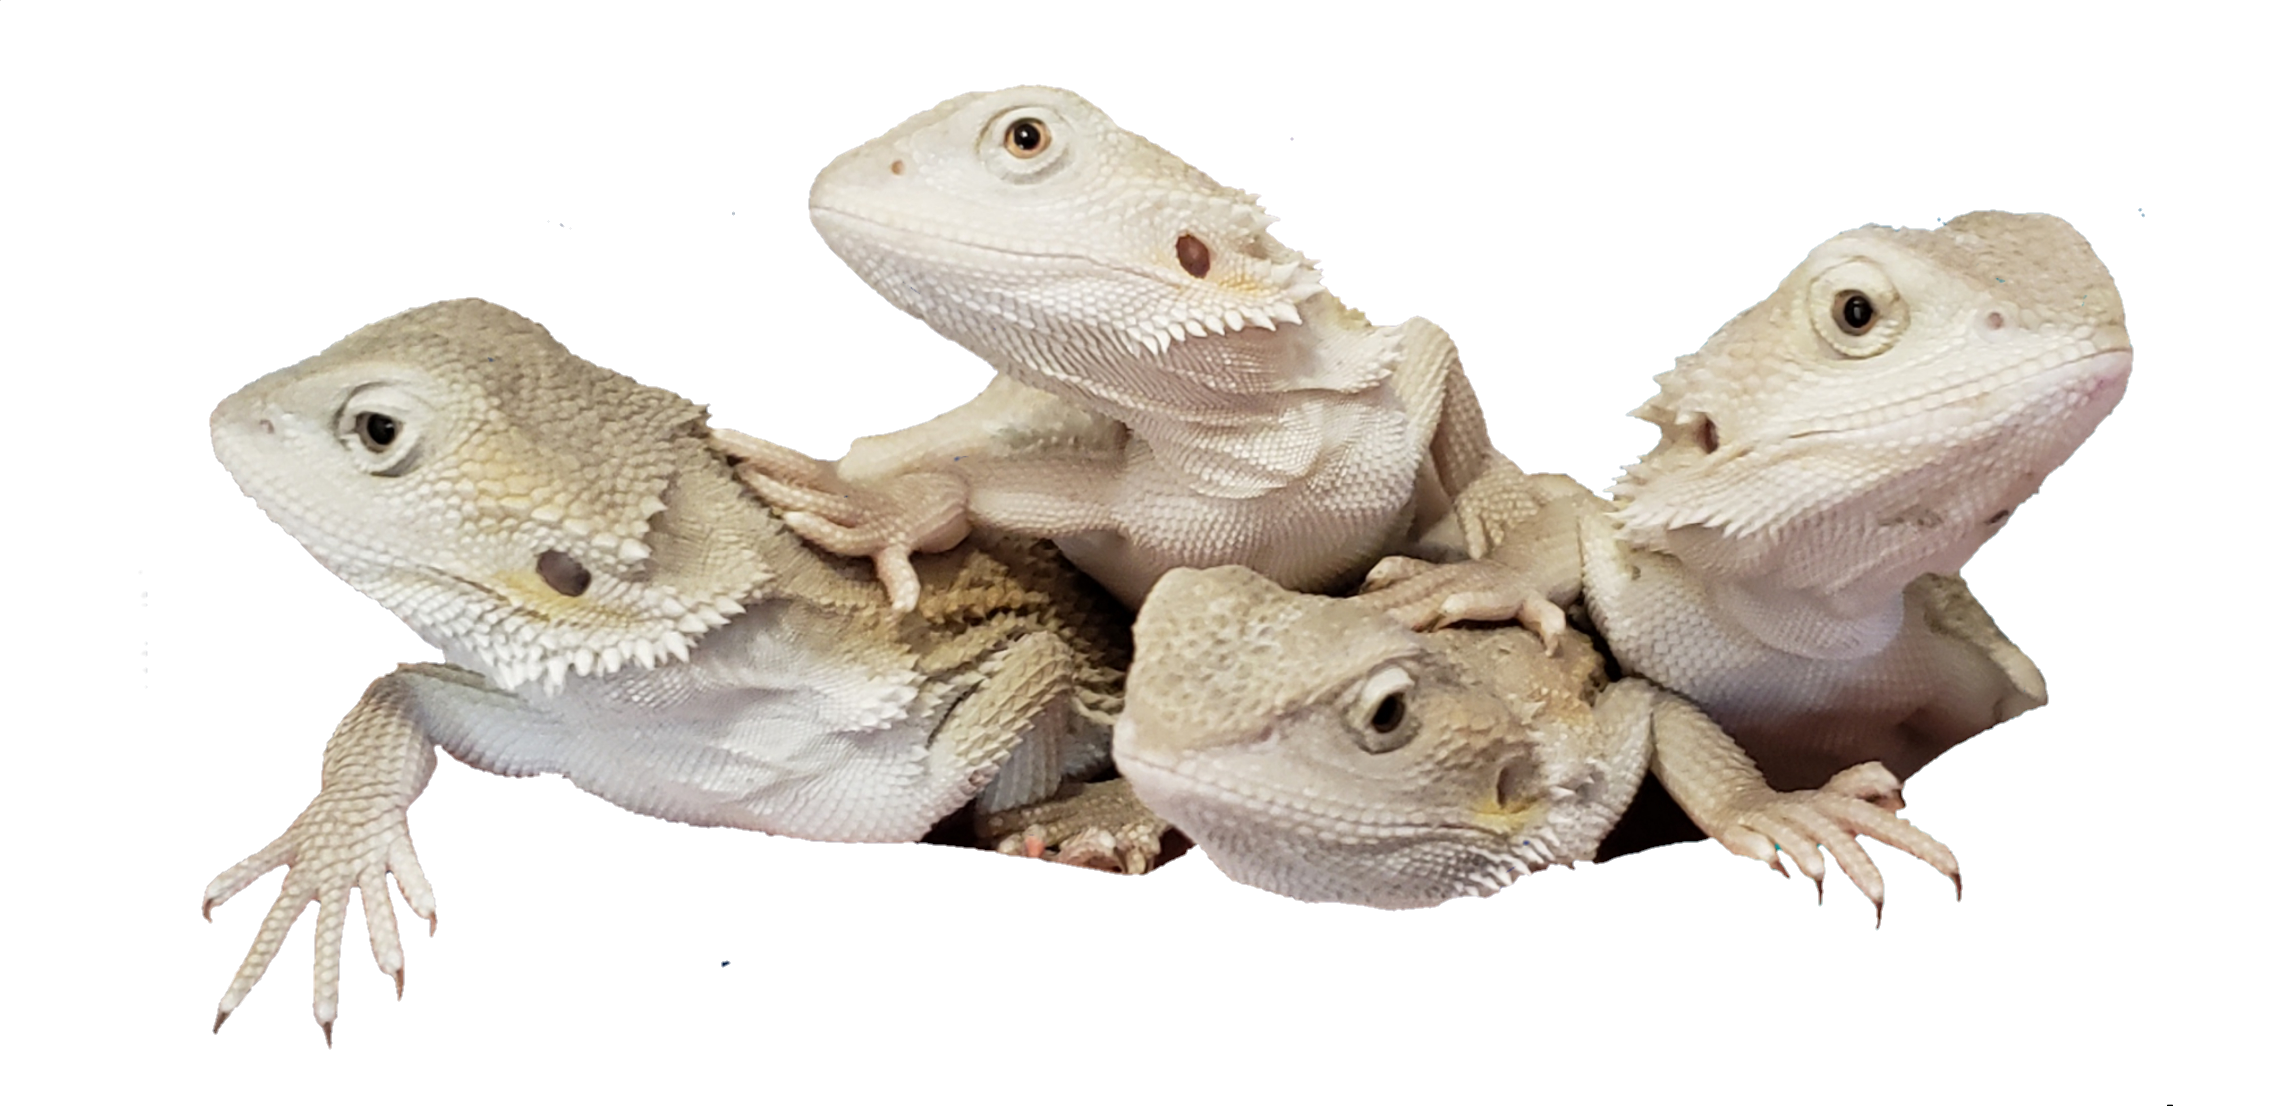 Gnarly Dragons – Quality Bearded Dragons